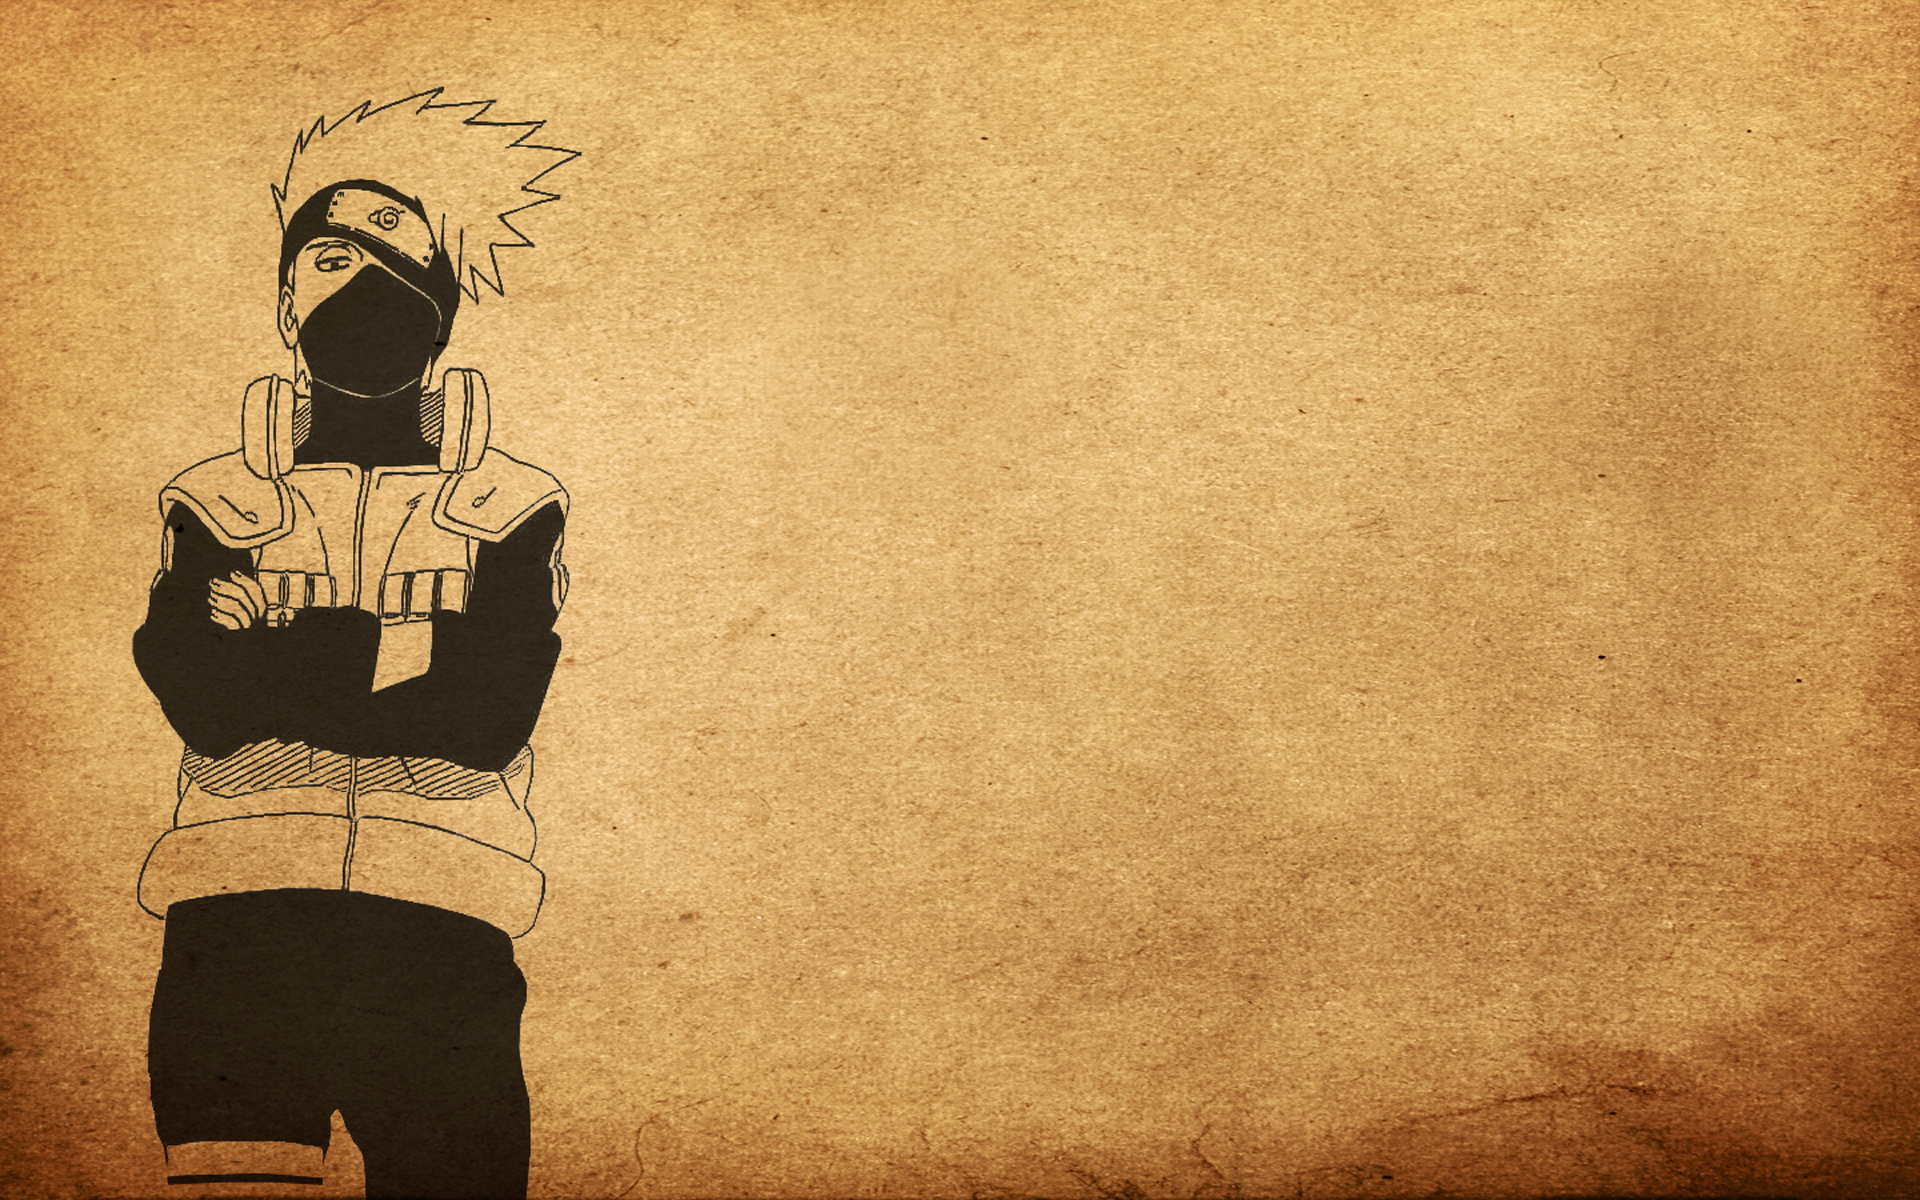 Wallpaper kakashi naruto anime shinobi minimal wallpapers anime 1920x1200